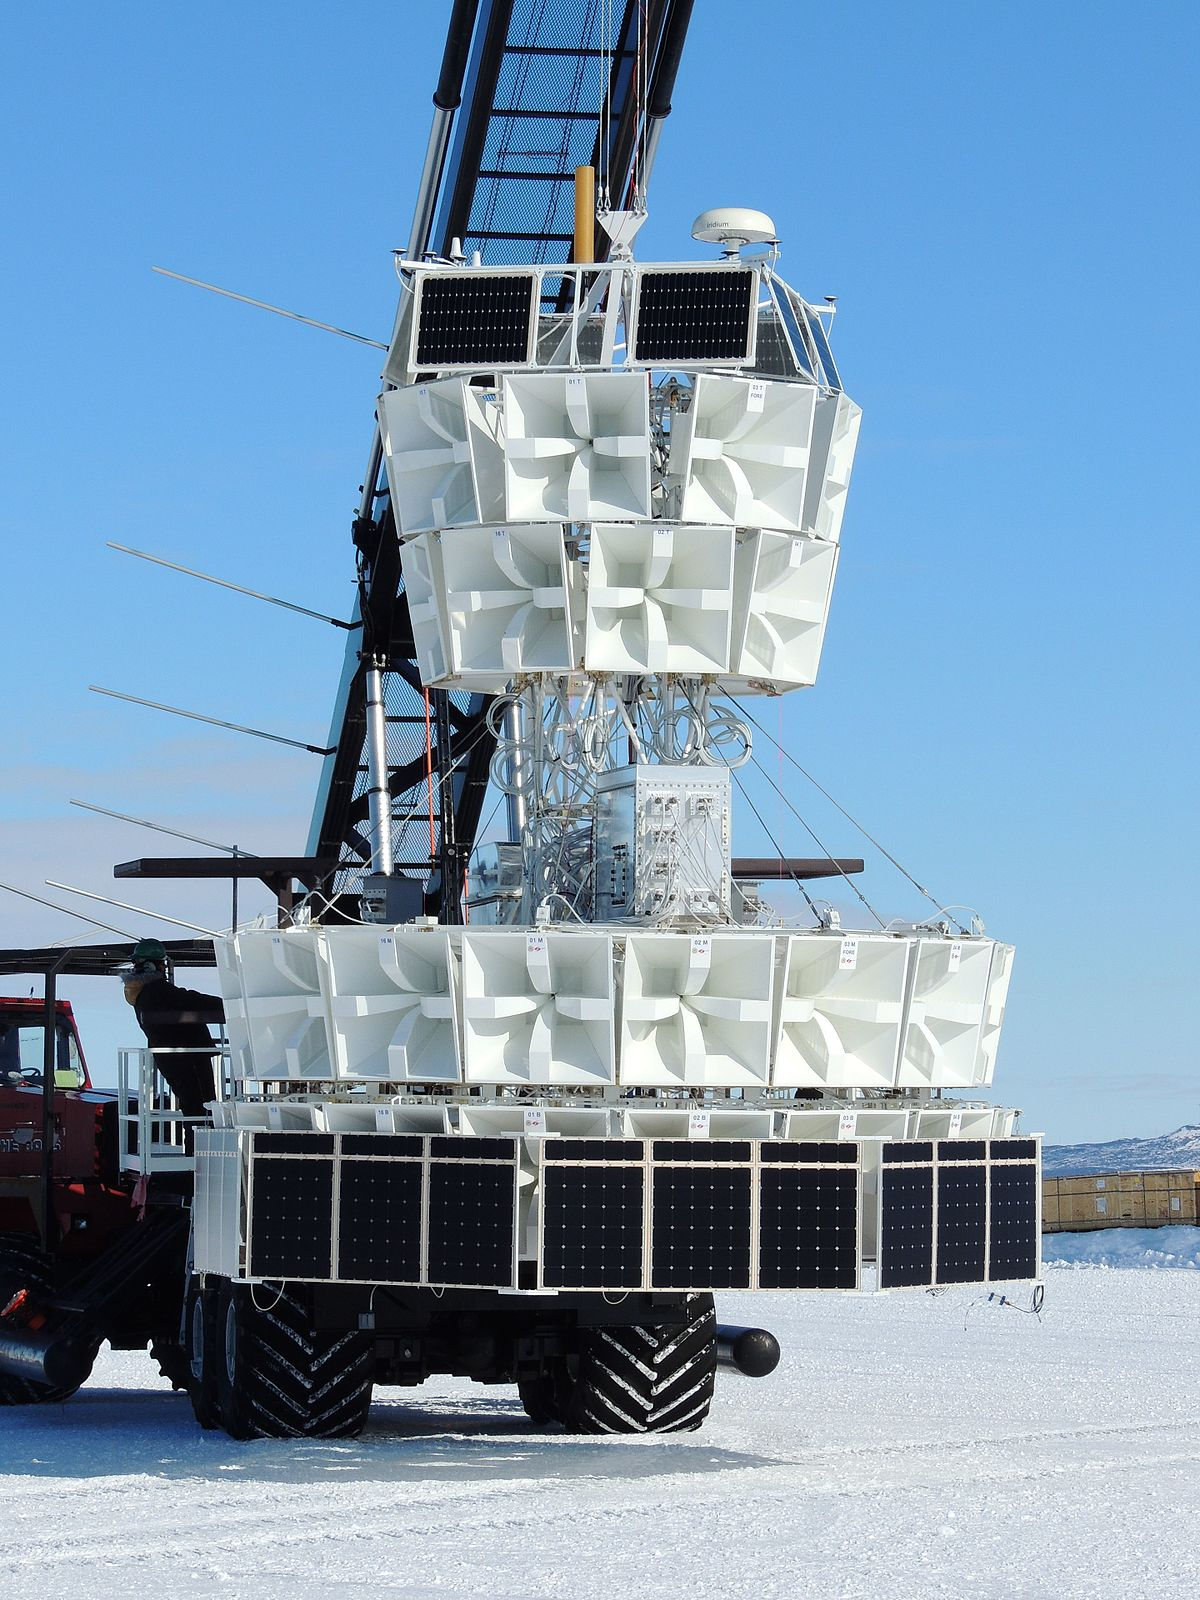 The ANITA-IV experiment in Antarctica, prior to being launched on a balloon.